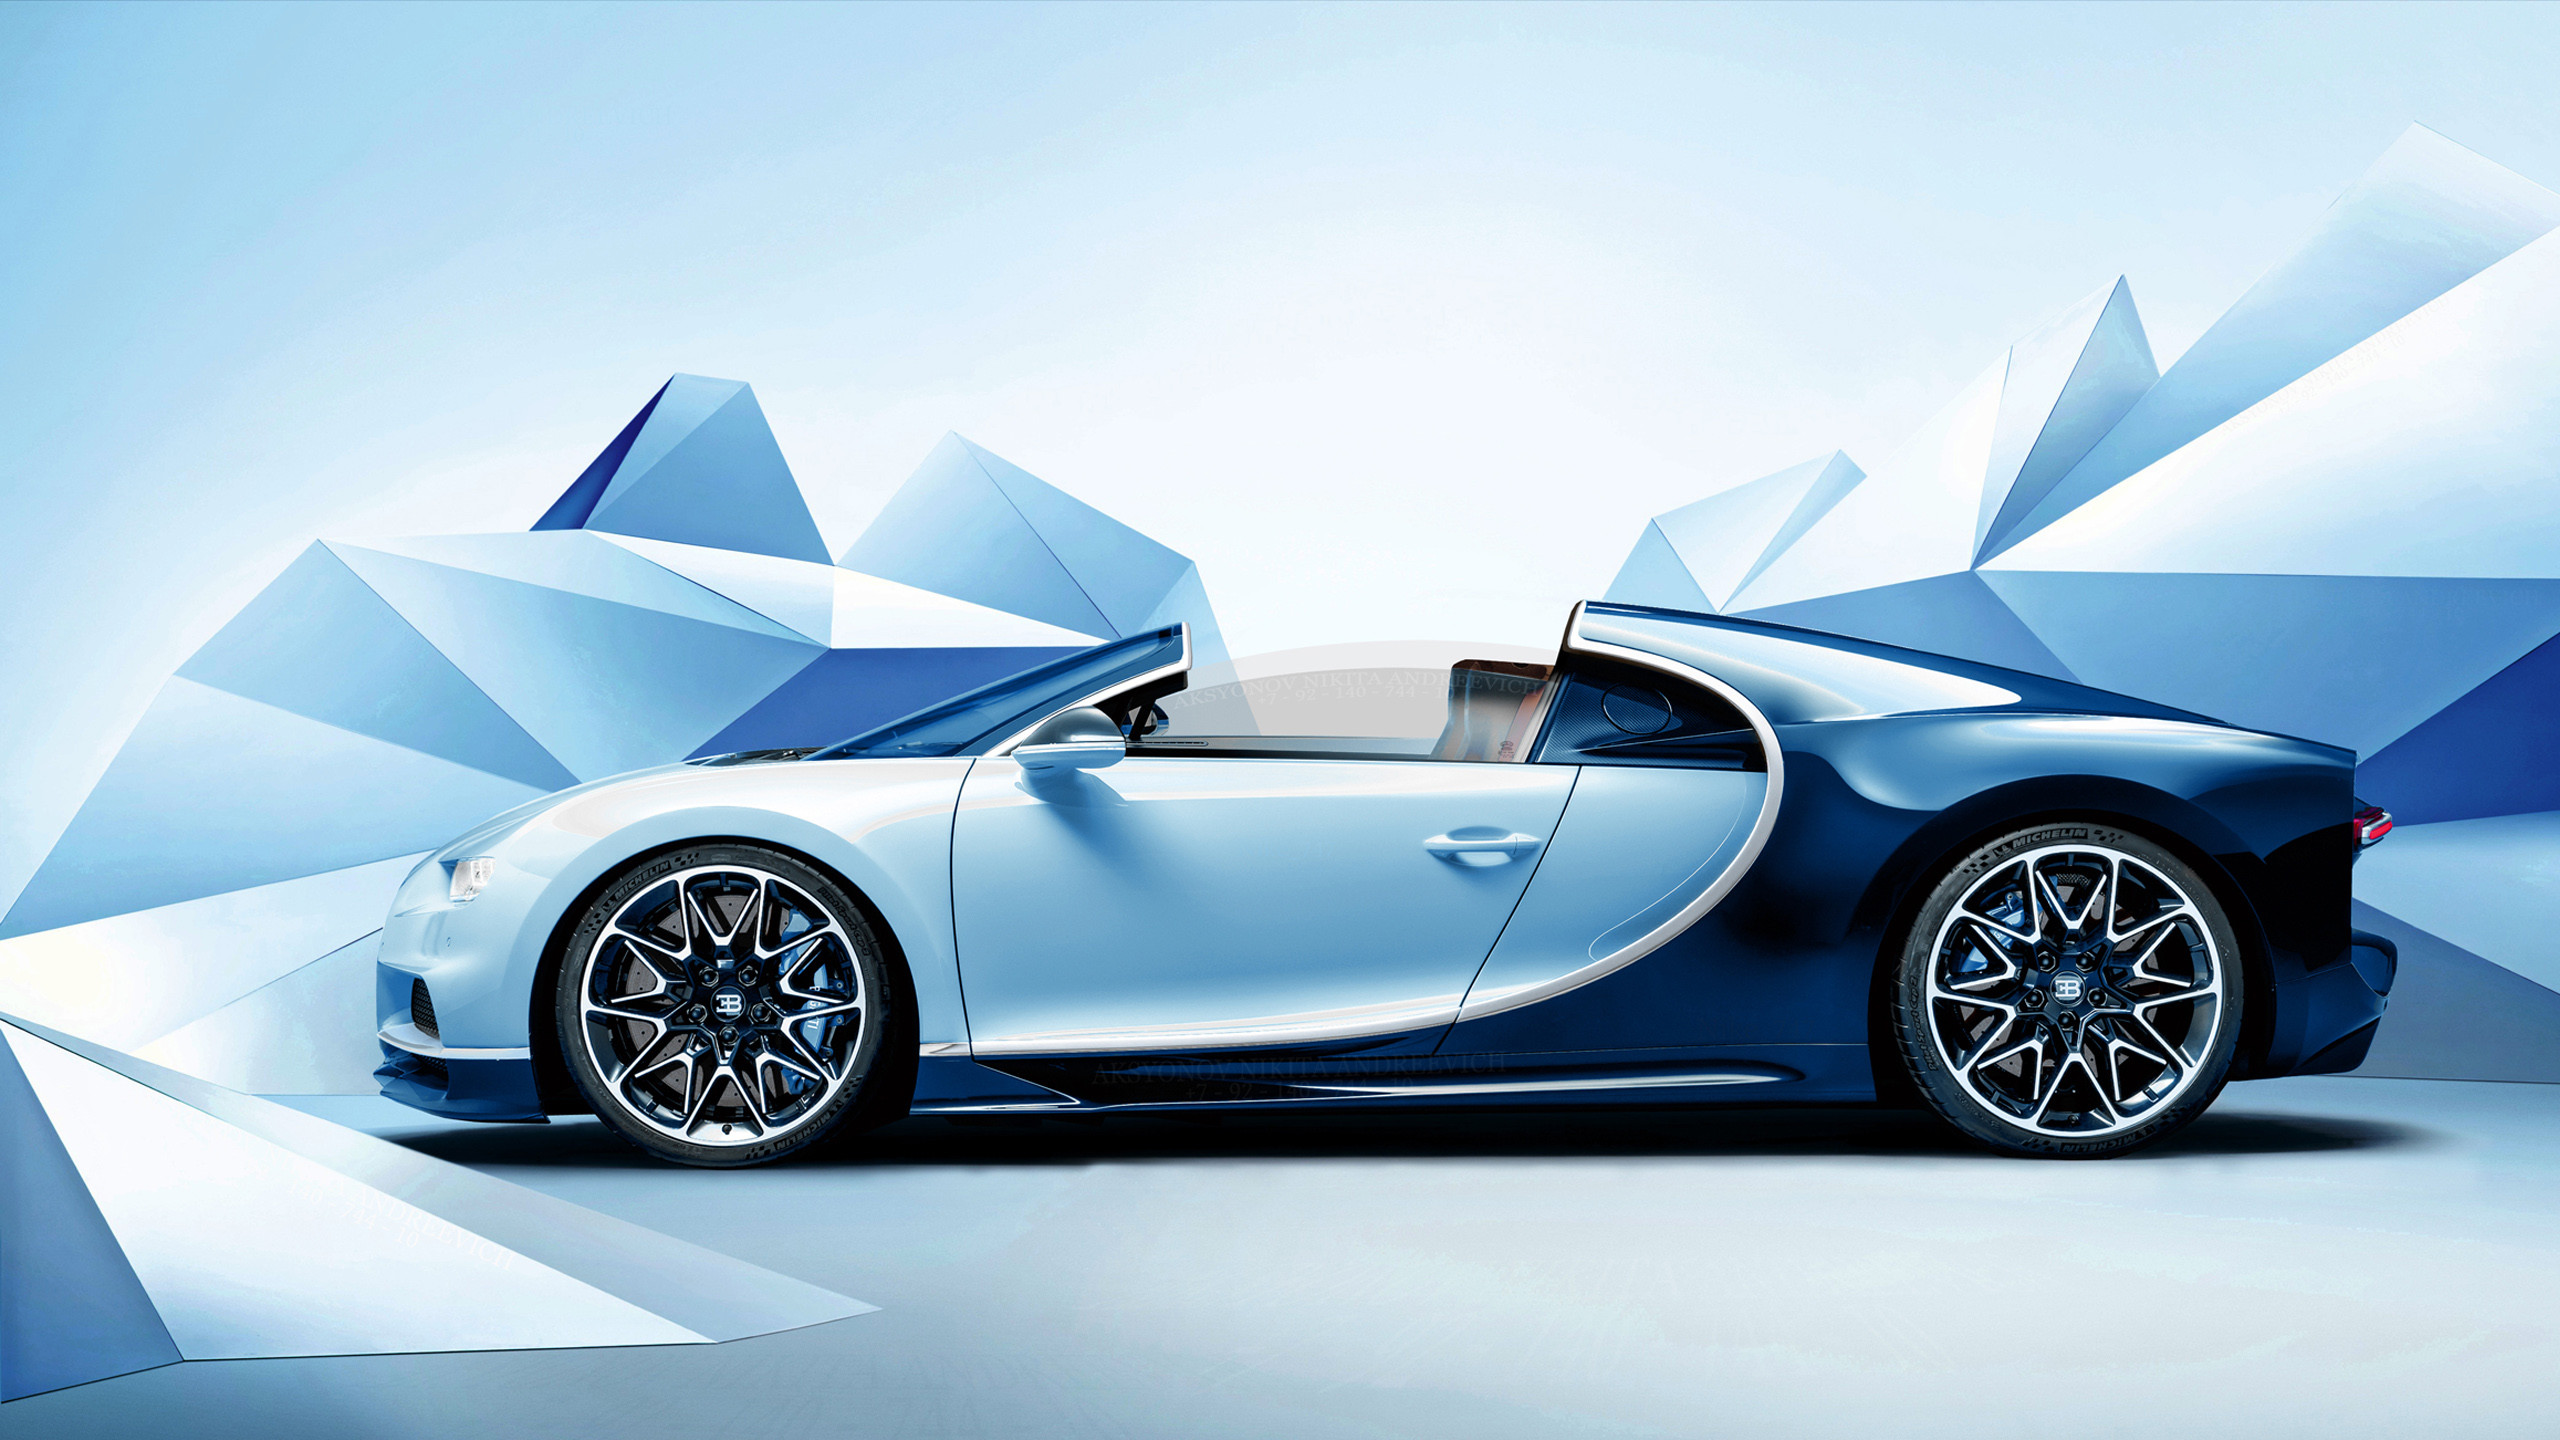 2560x1440 Bugatti Sports Cars HD Wallpapers for New Tab Chrome Web Store